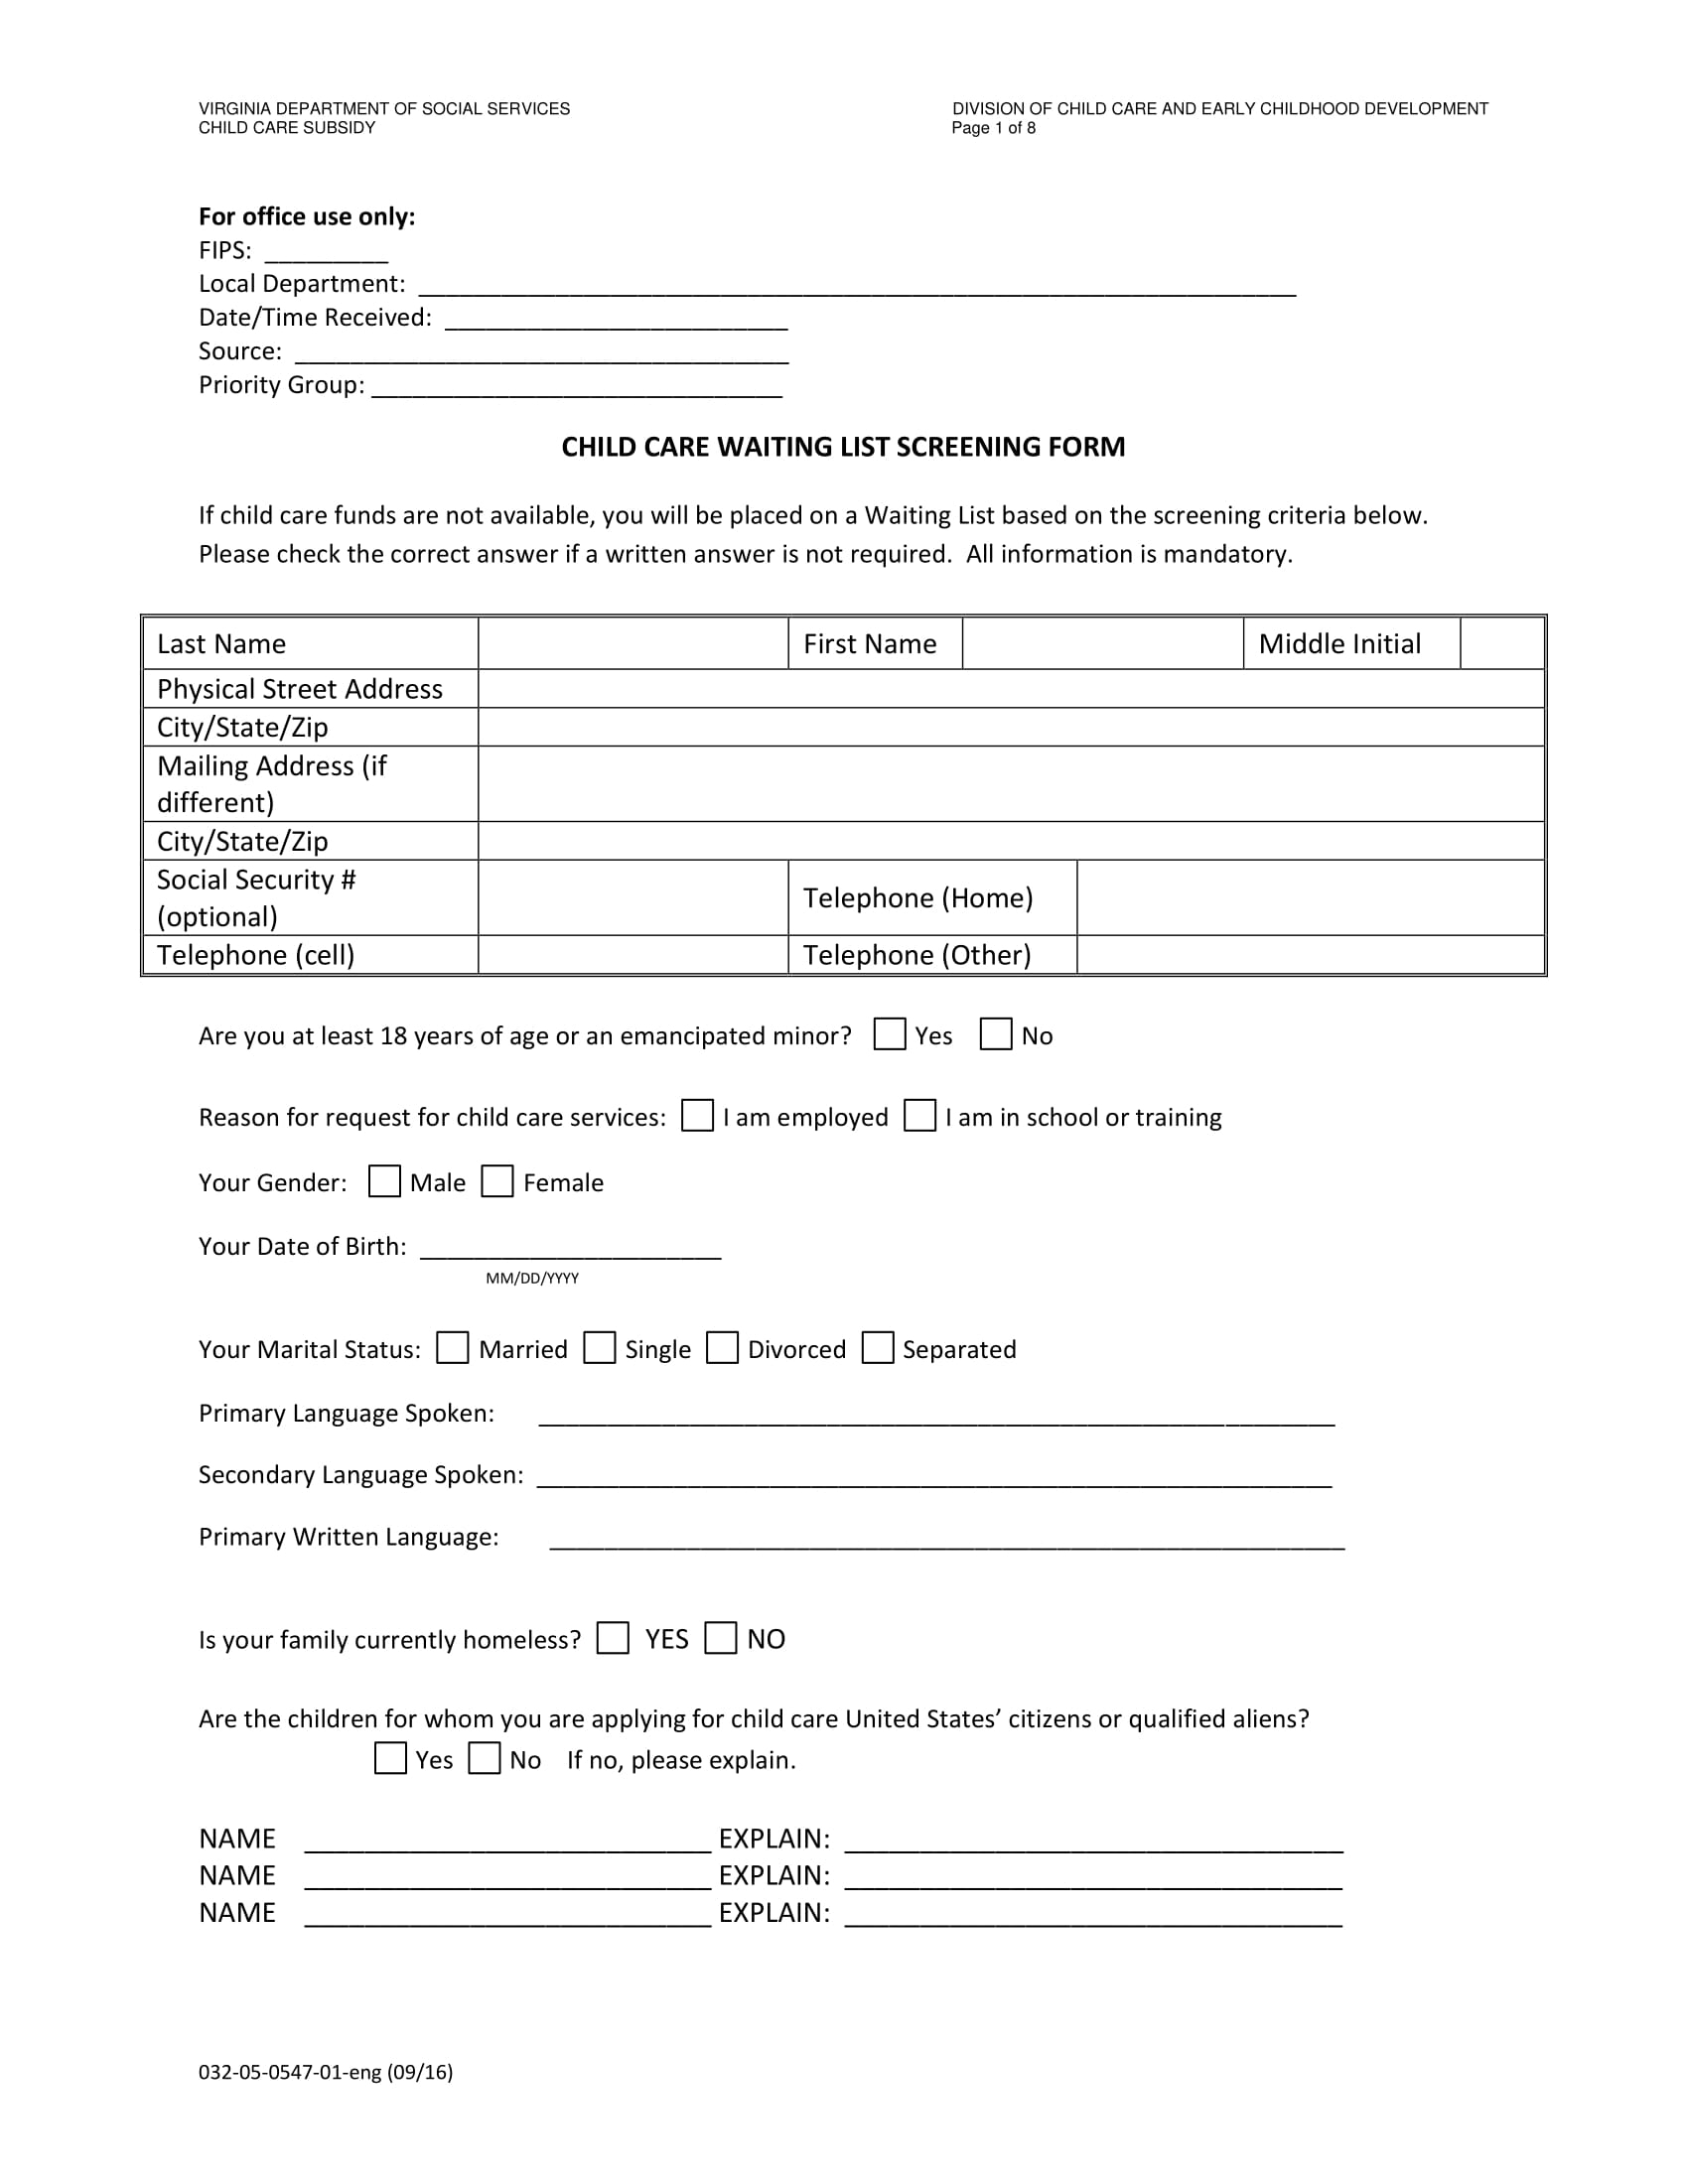 child care waiting list screening form 1